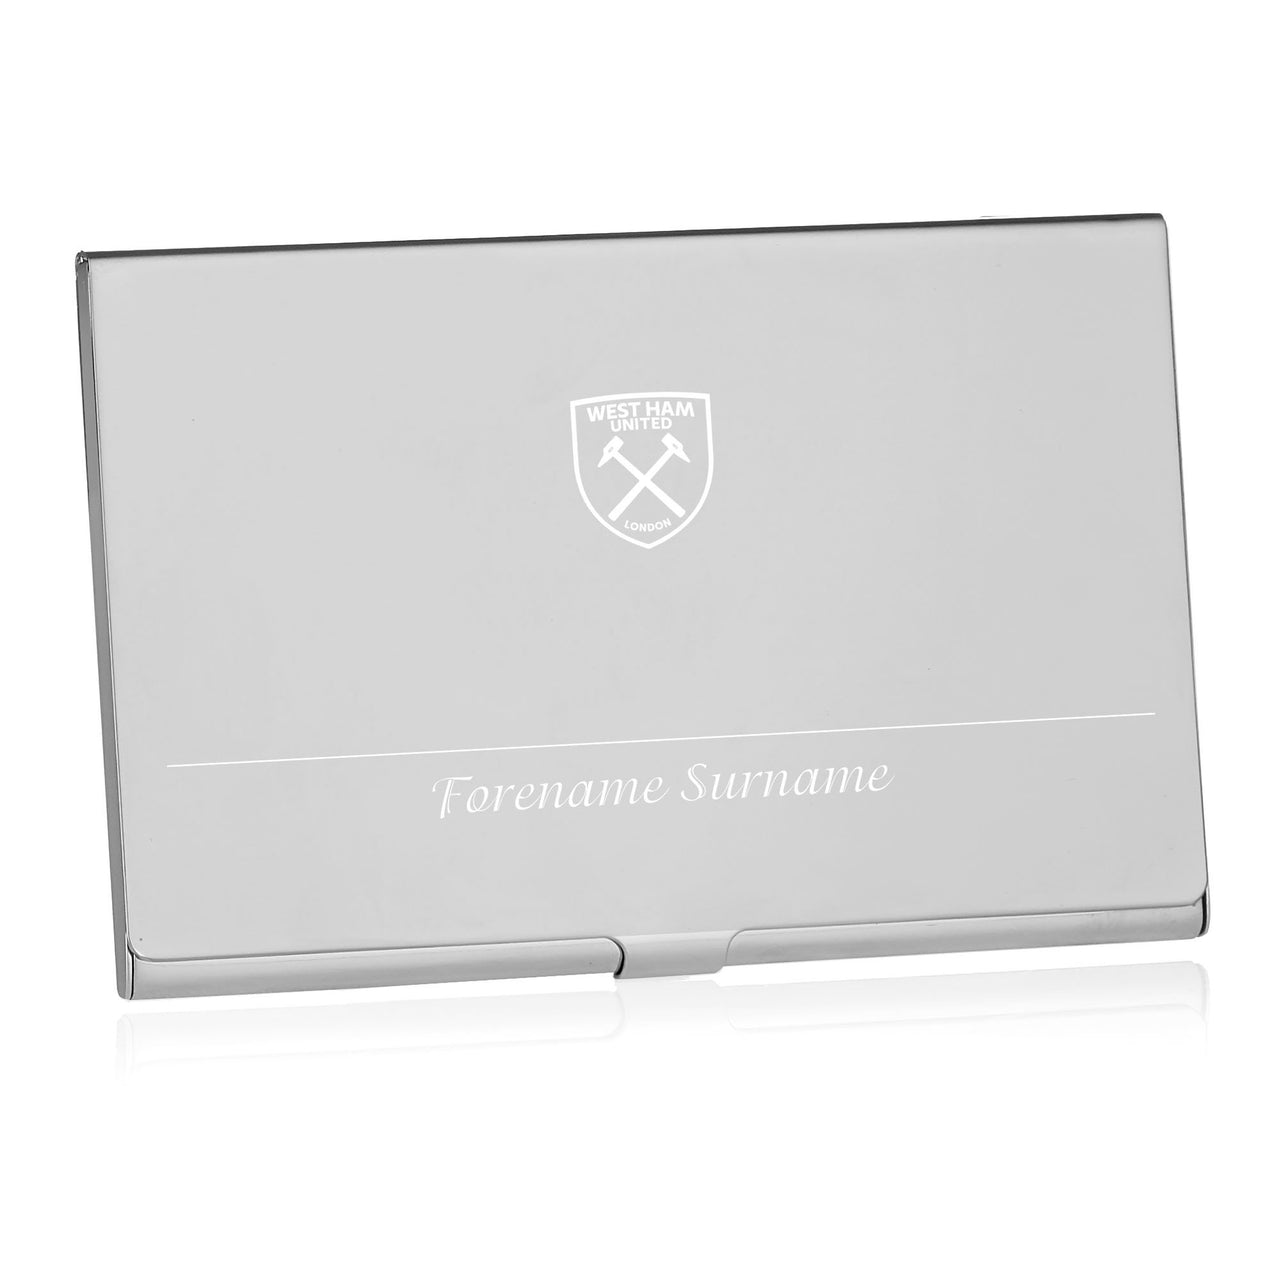 West Ham United FC Executive Business Card Holder